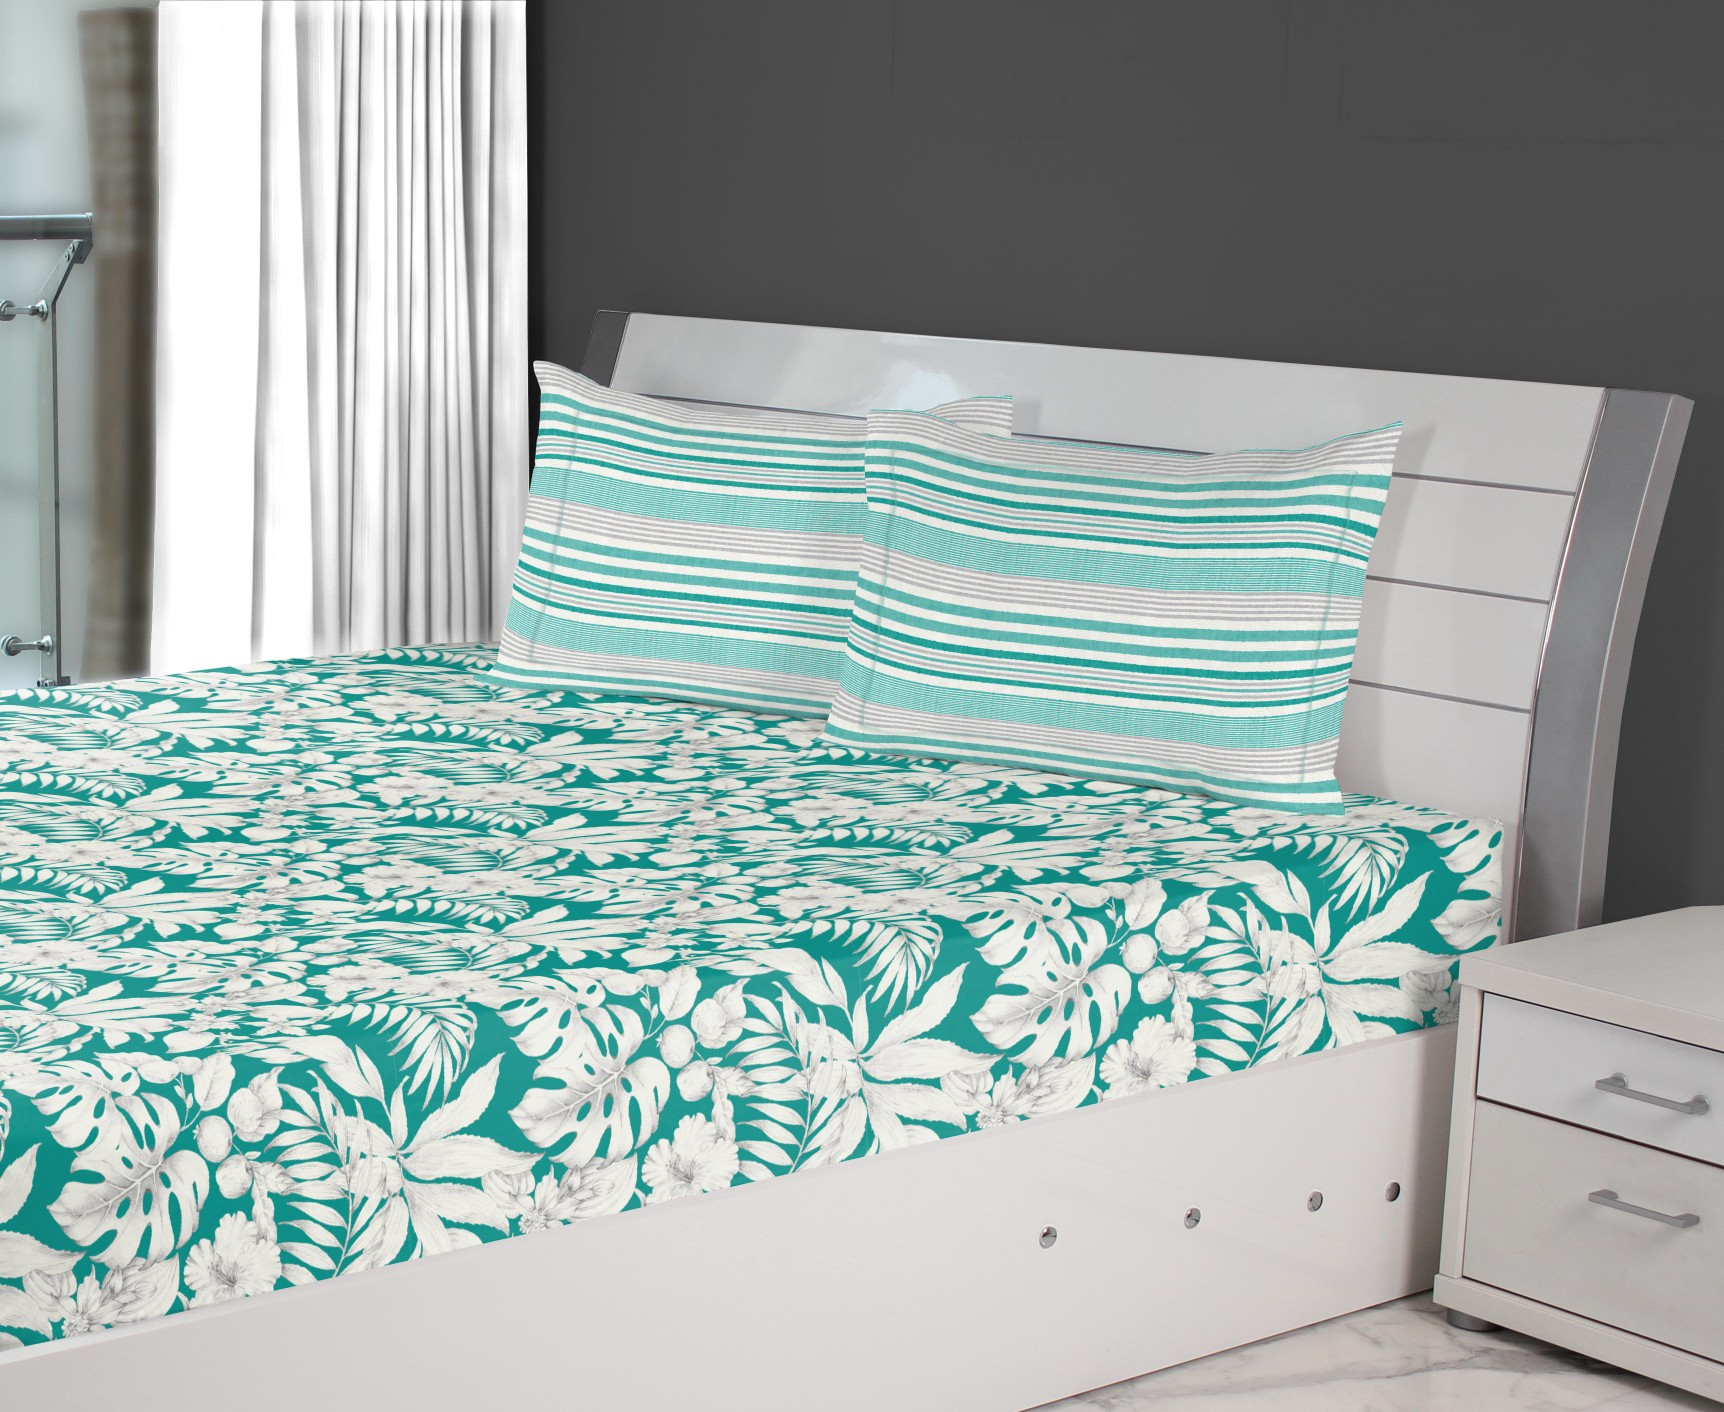 Emilia Cotton Double Bedsheets in Teal Colour by Living Essence